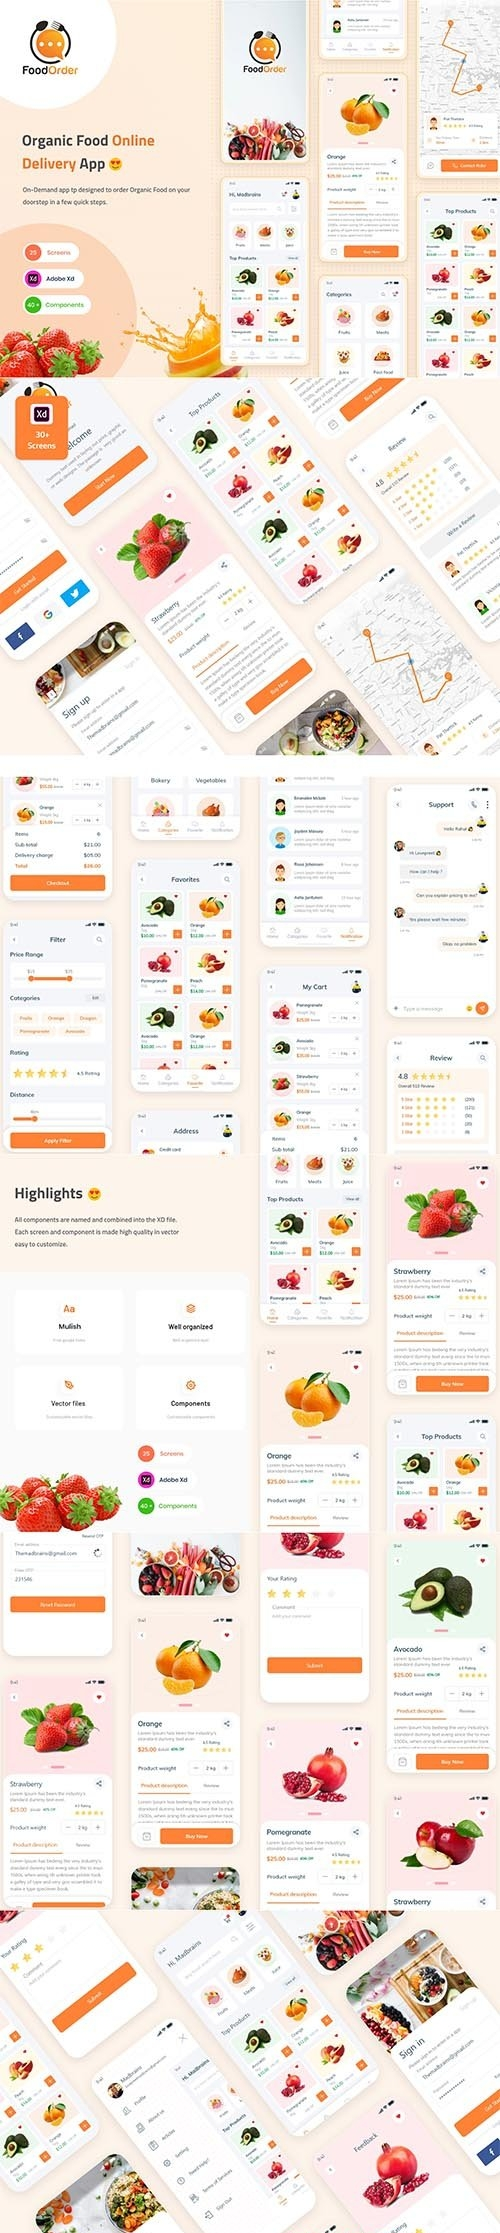 Food Order - Grocery Application UI kit